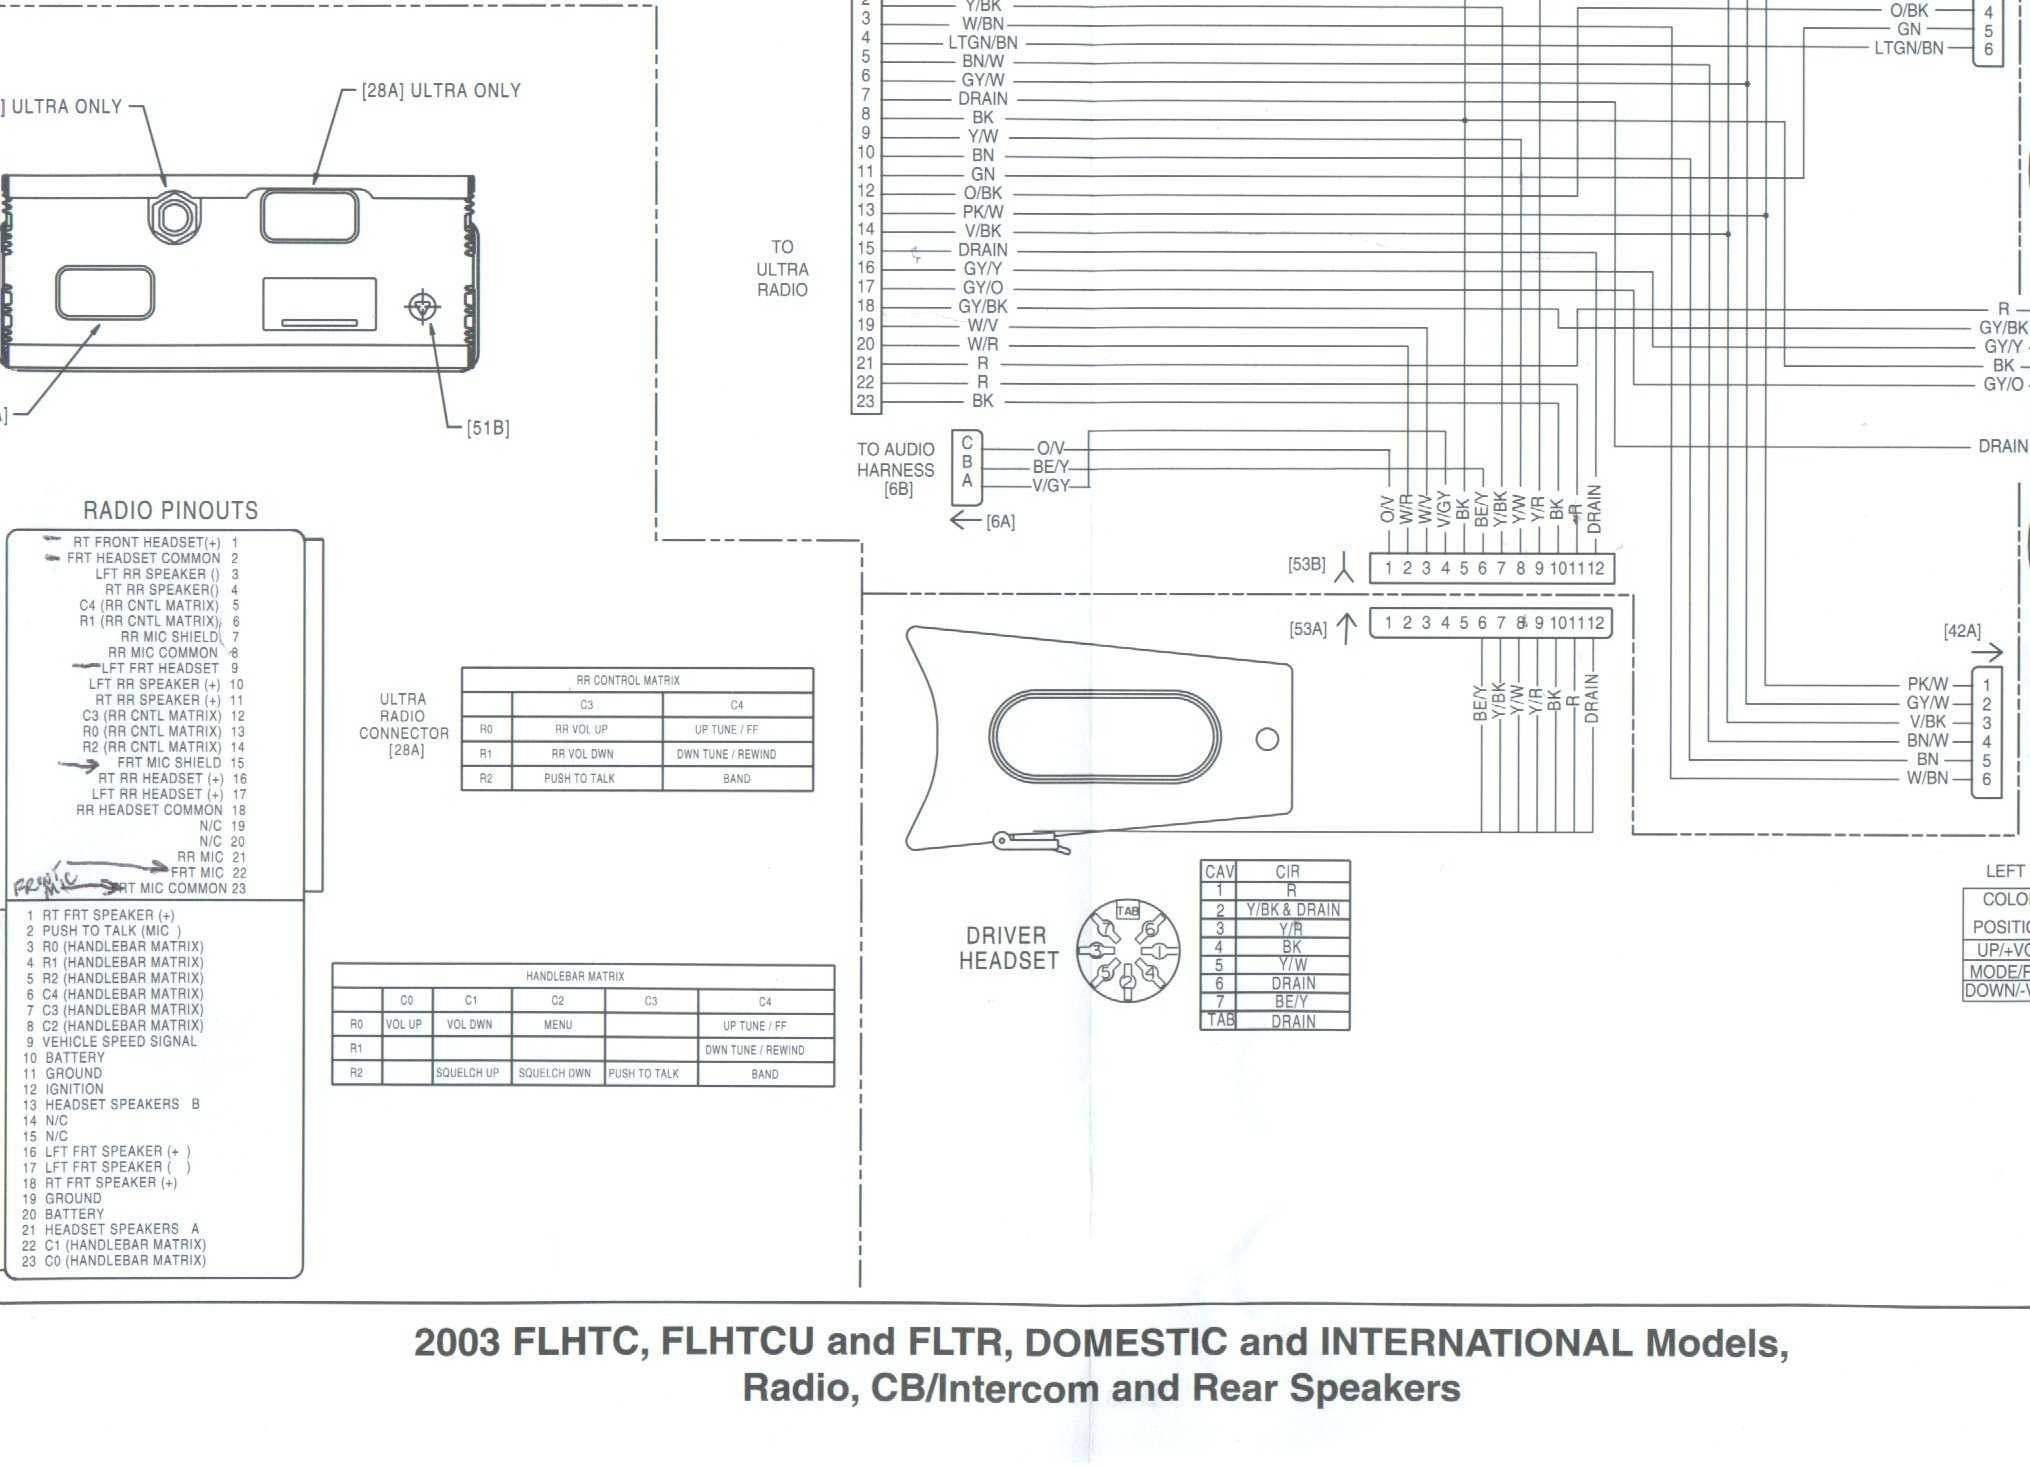 mack fire truck wiring diagram wiring library Mack Pump Diagram mack radio wire harnesses radio sensors, radio accessories, radio mack fire truck wiring schematic